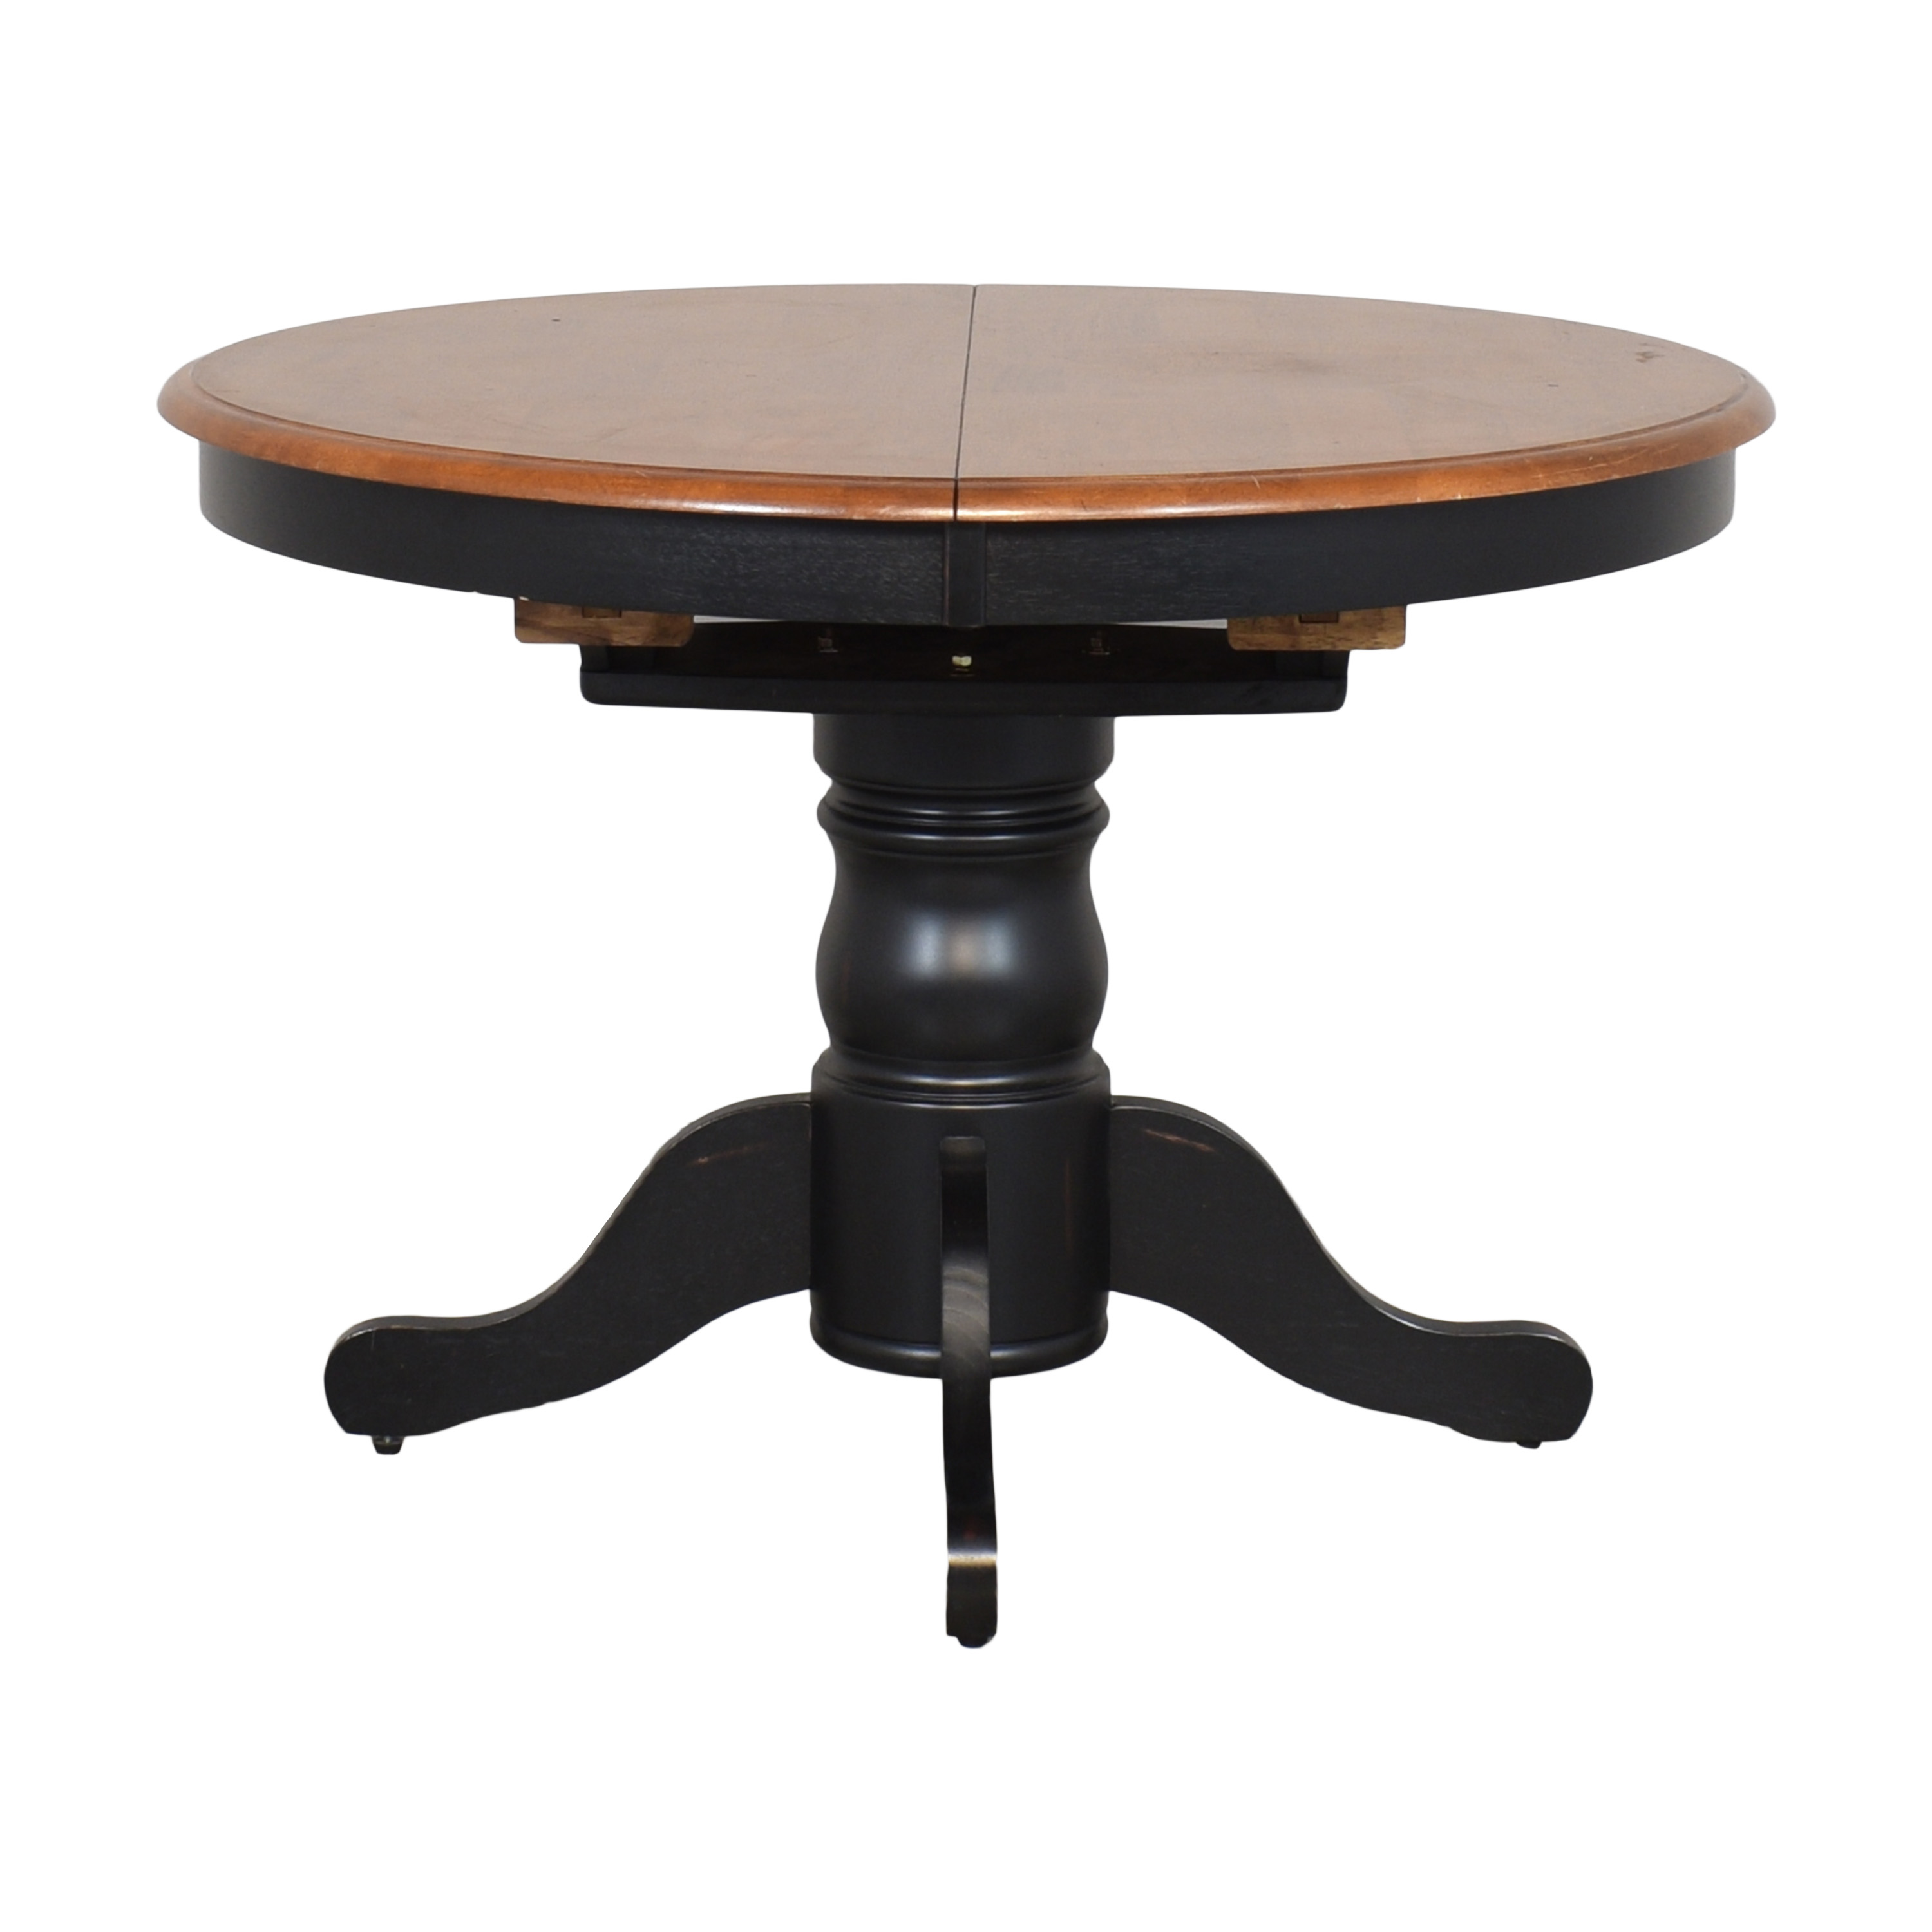 Raymour & Flanigan Raymour & Flanigan Expandable Dining Table ma